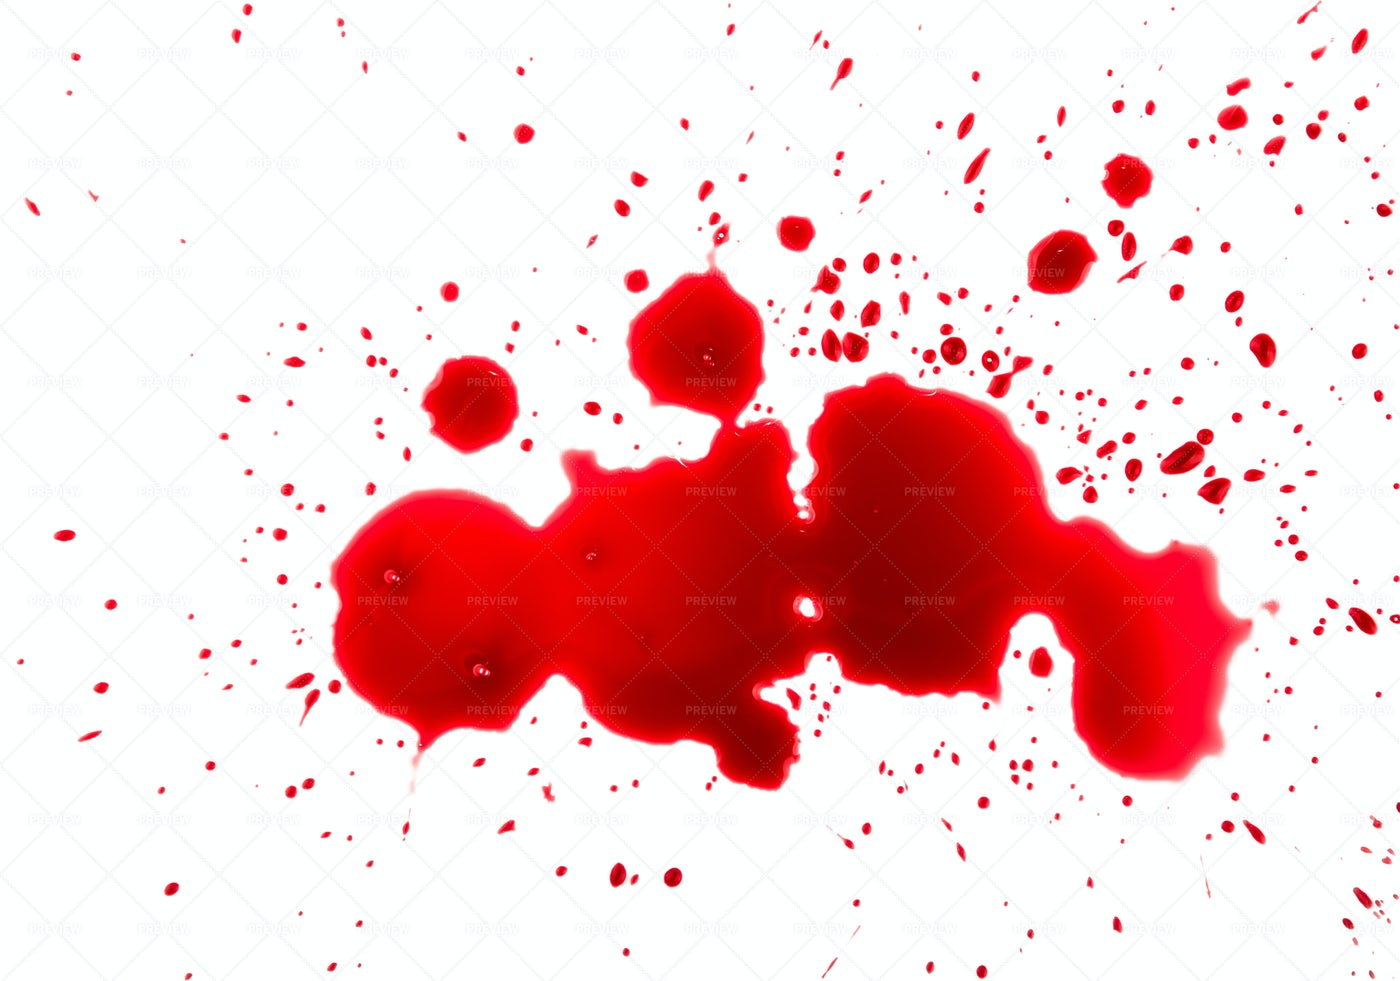 Red Wine Stains And Drops: Stock Photos